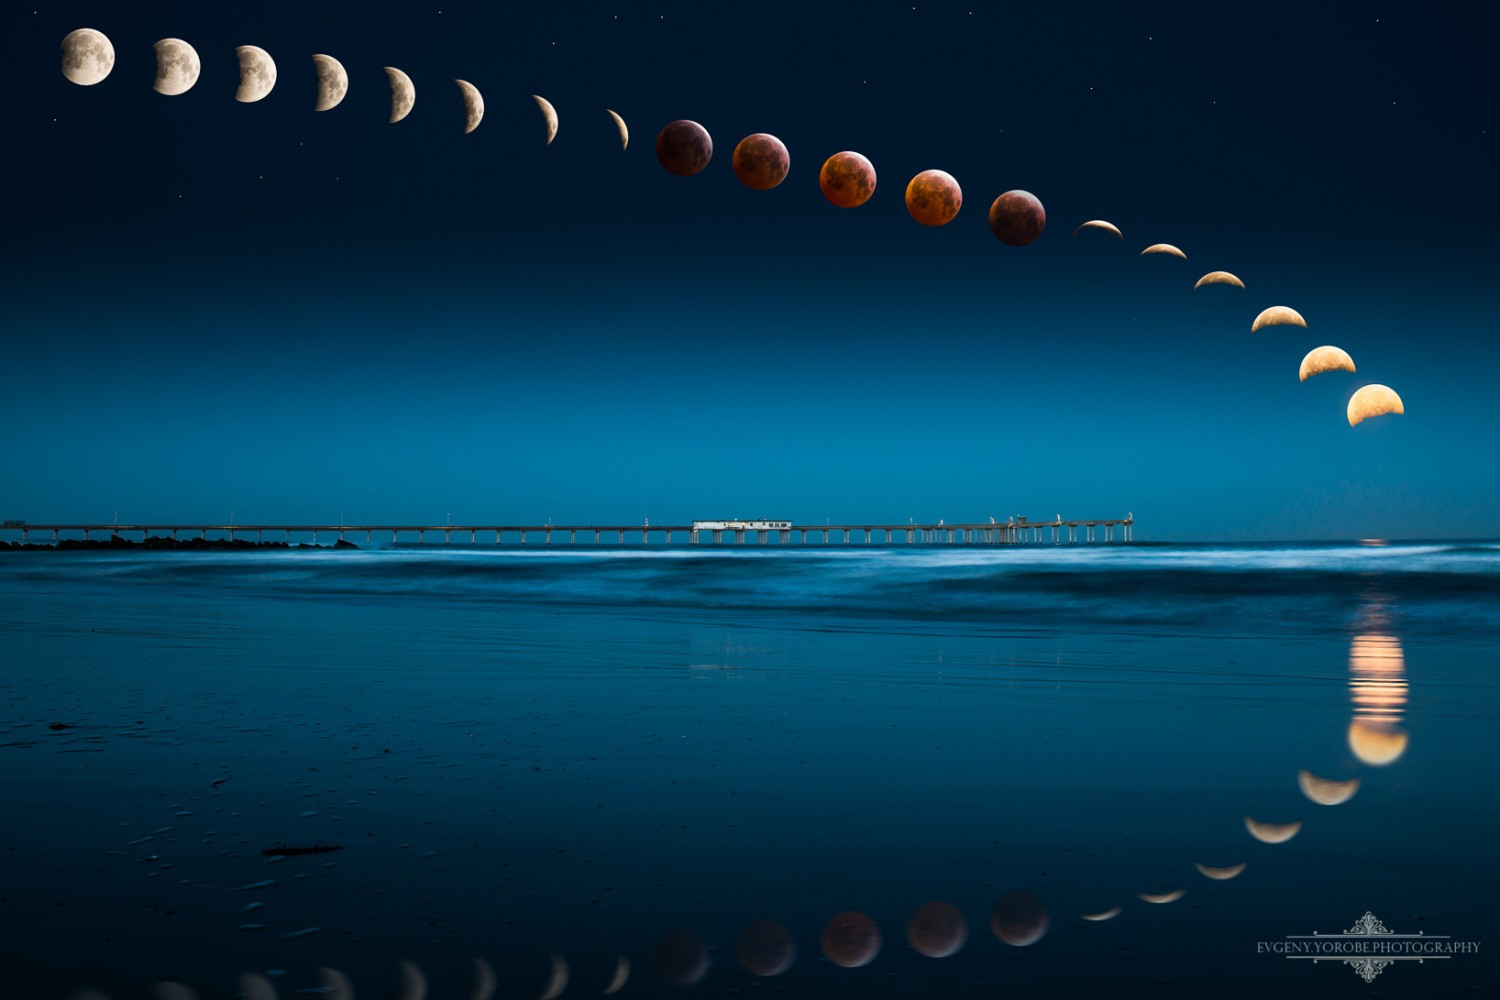 30 Fantastic Photos of the April 4th Blood Moon